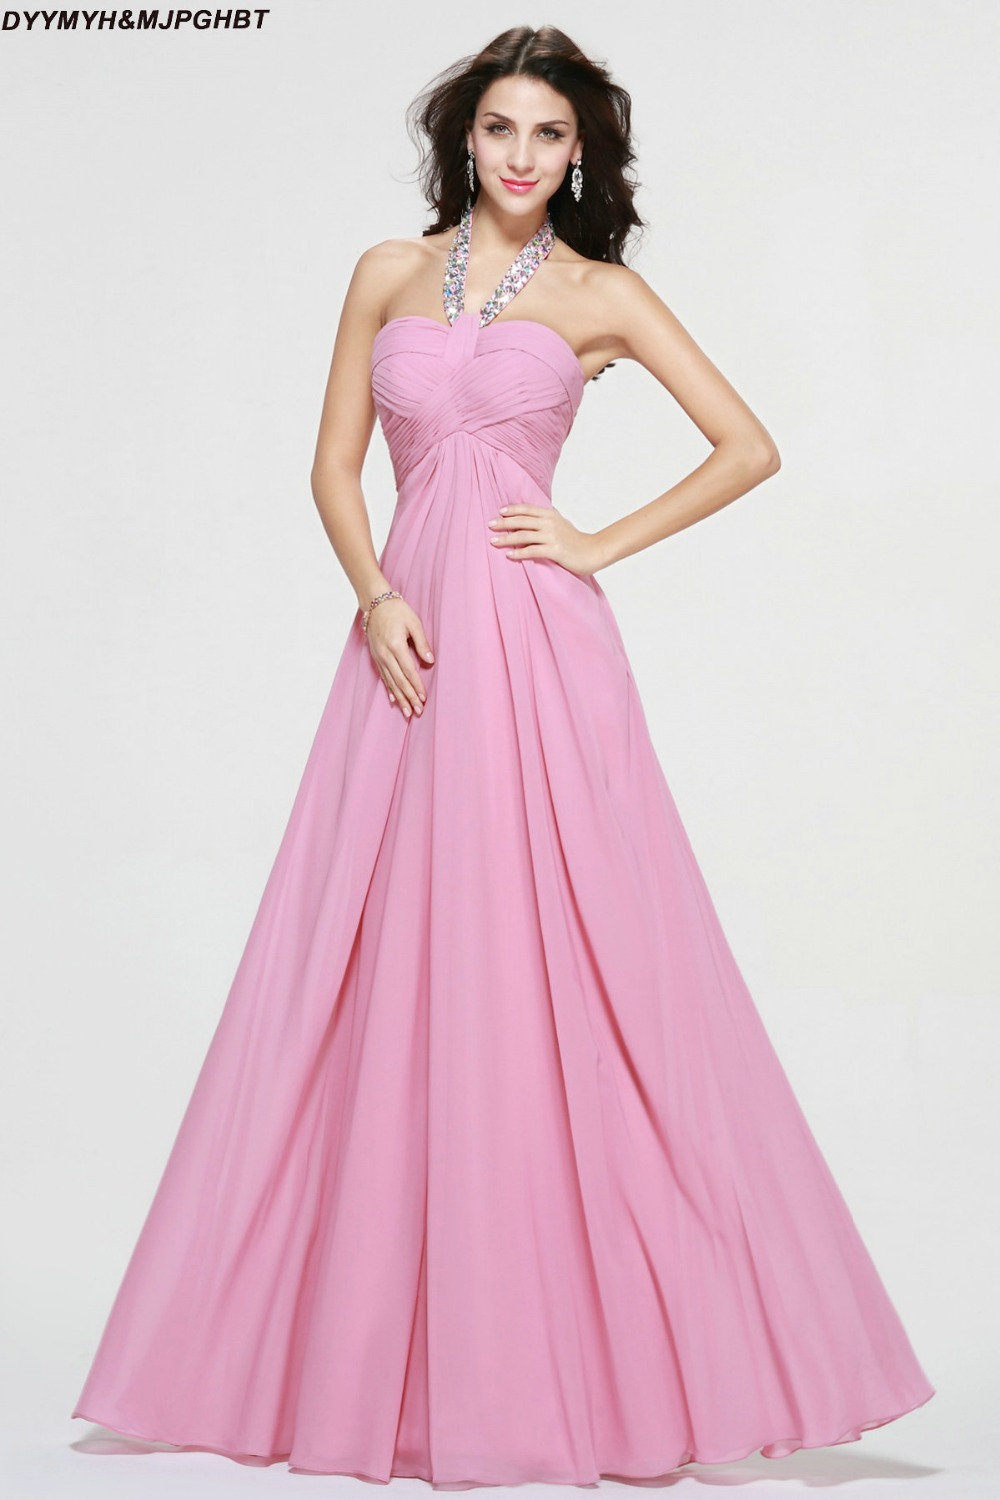 Baby pink dress bridesmaid promotion shop for promotional baby dusty pink maid of honor dresses crystal halter open back with bow long baby pink chiffon bridesmaid dresses ombrellifo Choice Image